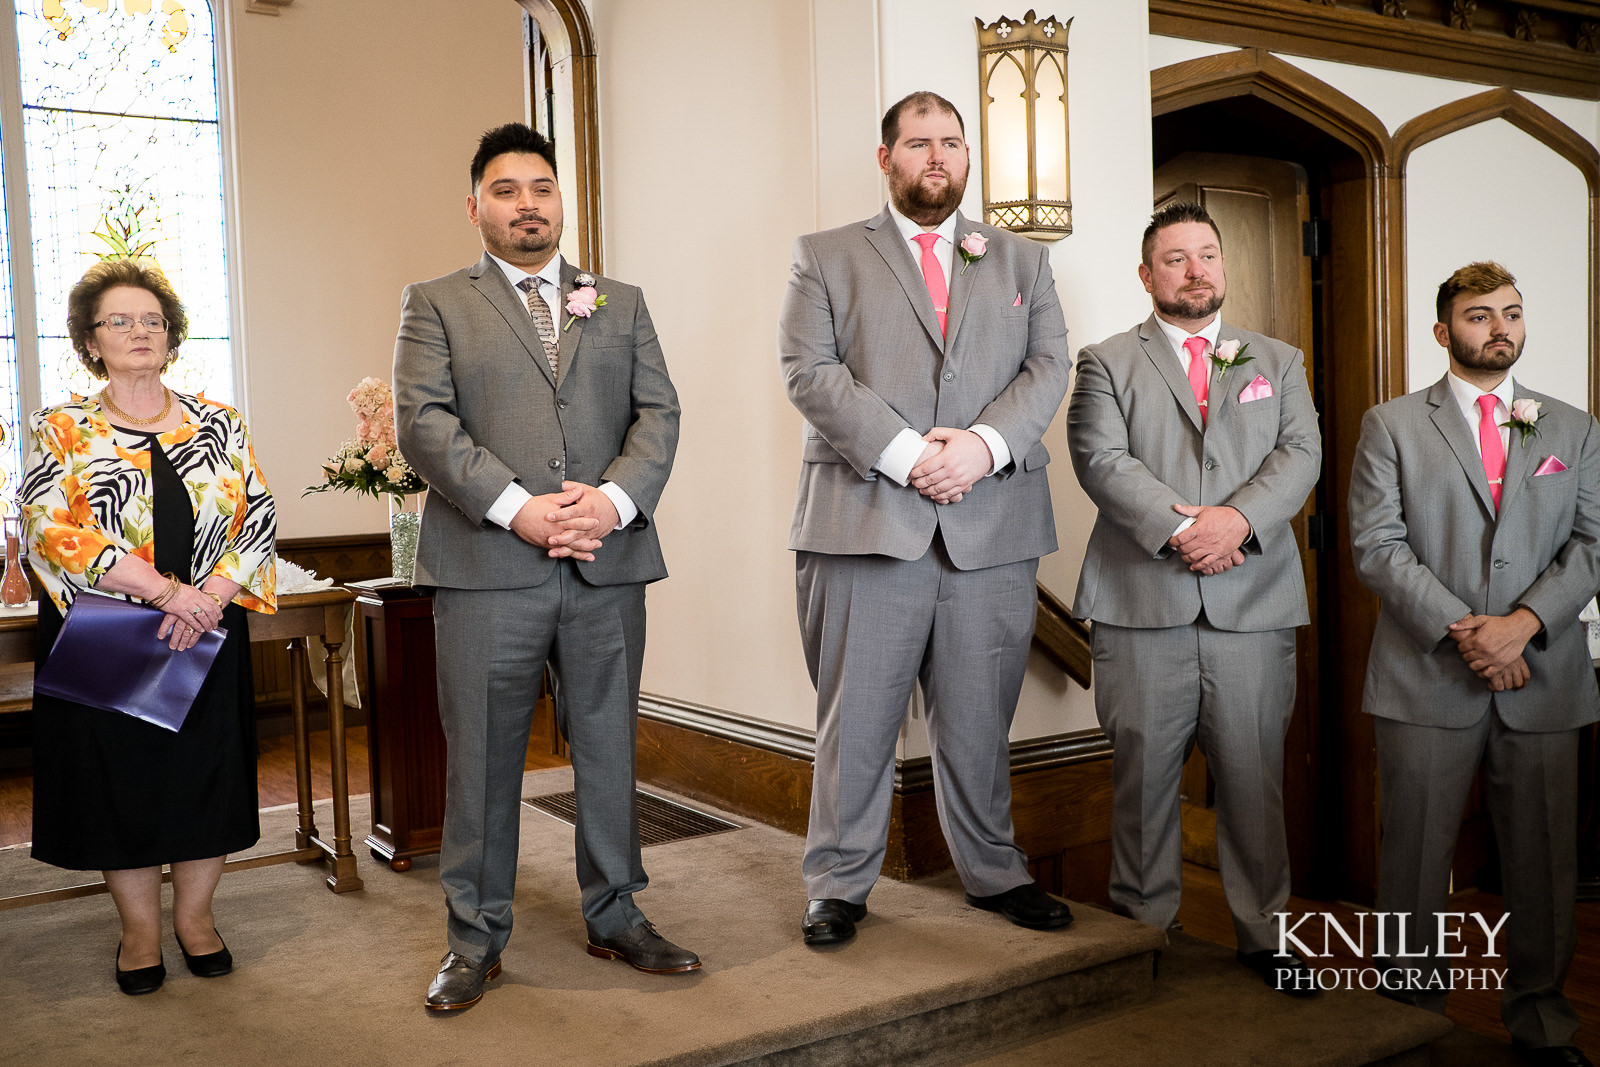 033 - Westminster Chapel - Rochester NY wedding photo - Kniley Photography.jpg